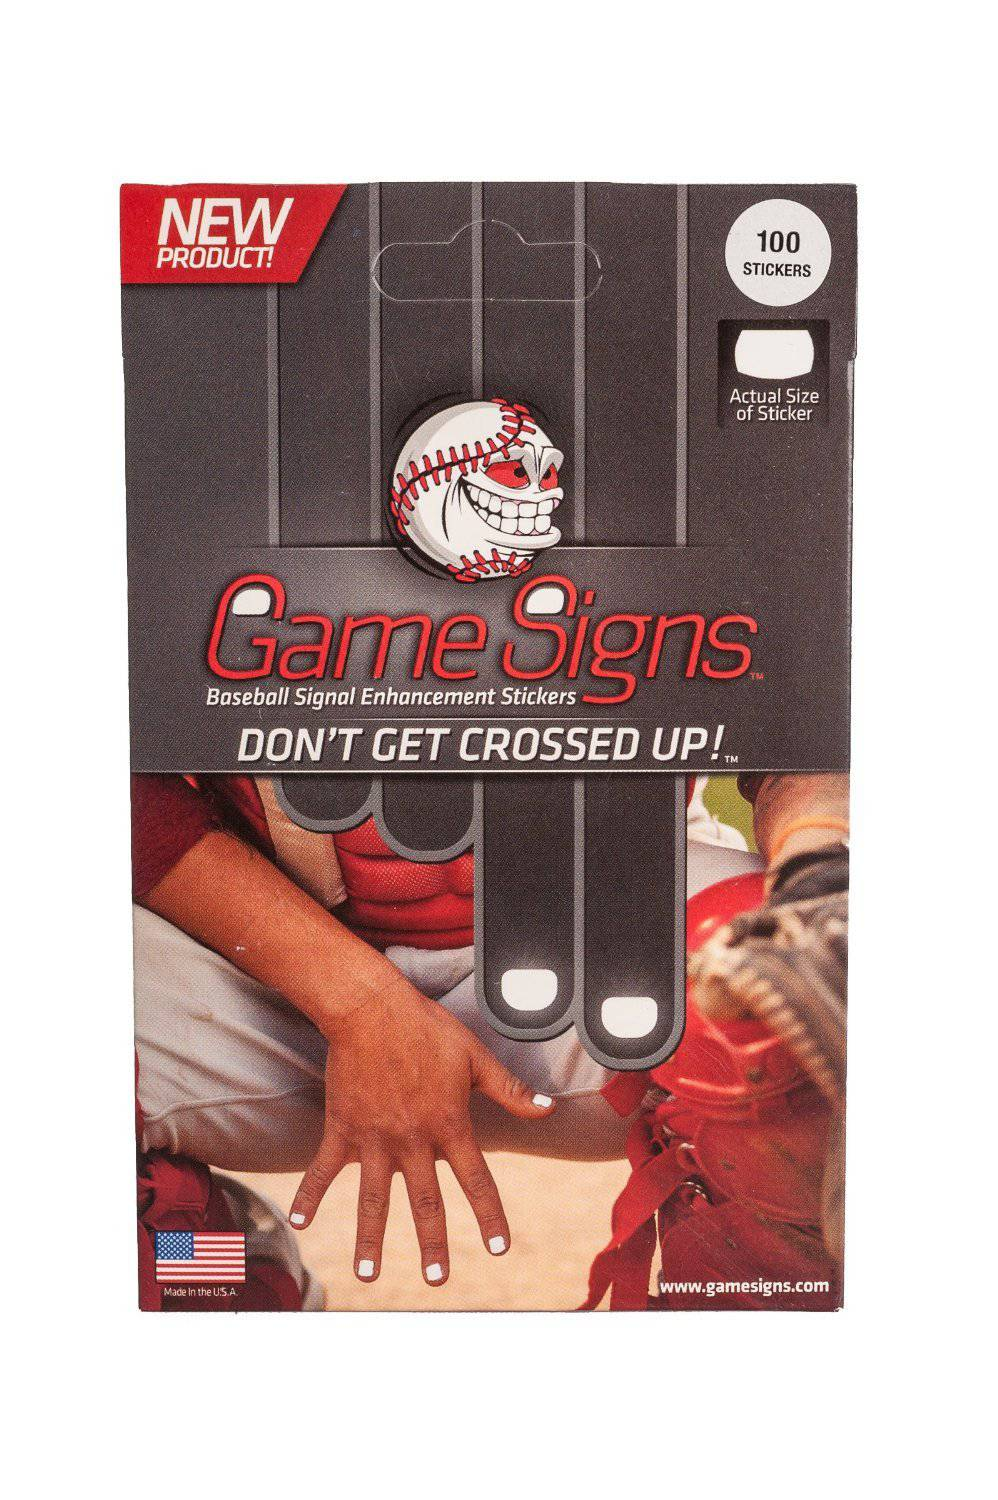 Game Signs Baseball Signal Stickers Optic White -100 pk - HIT A Double